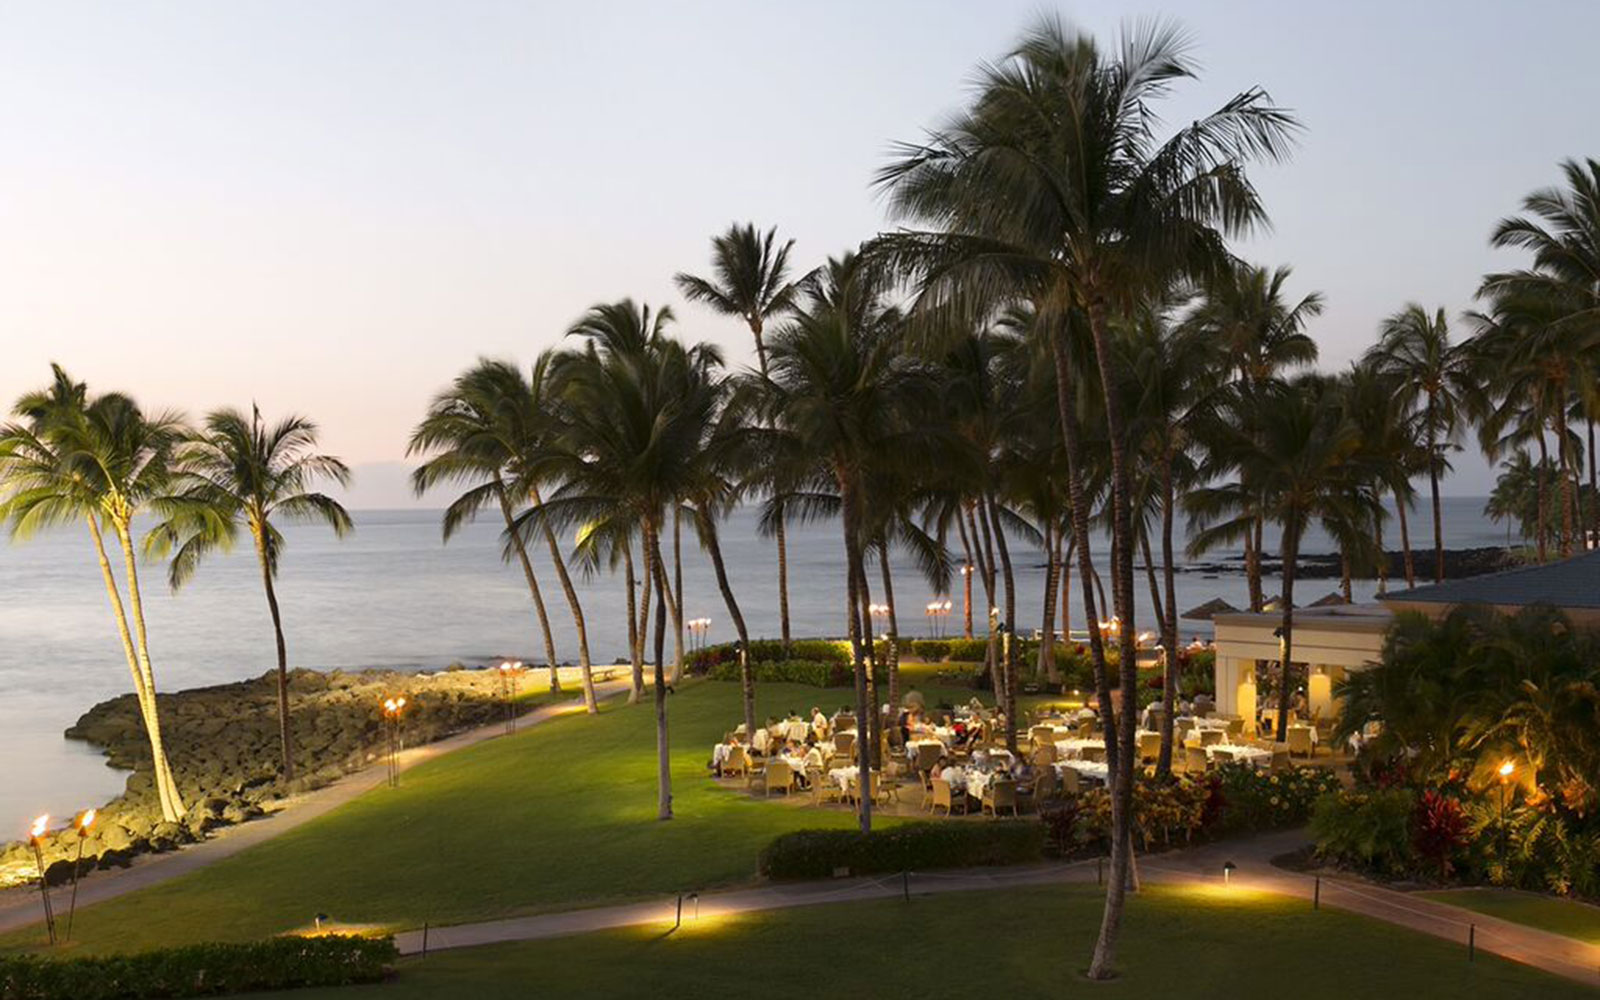 Ten of America's Best Outdoor Dining Spots, According to OpenTable: Brown's Beach House in Kohala Coast, Hawaii